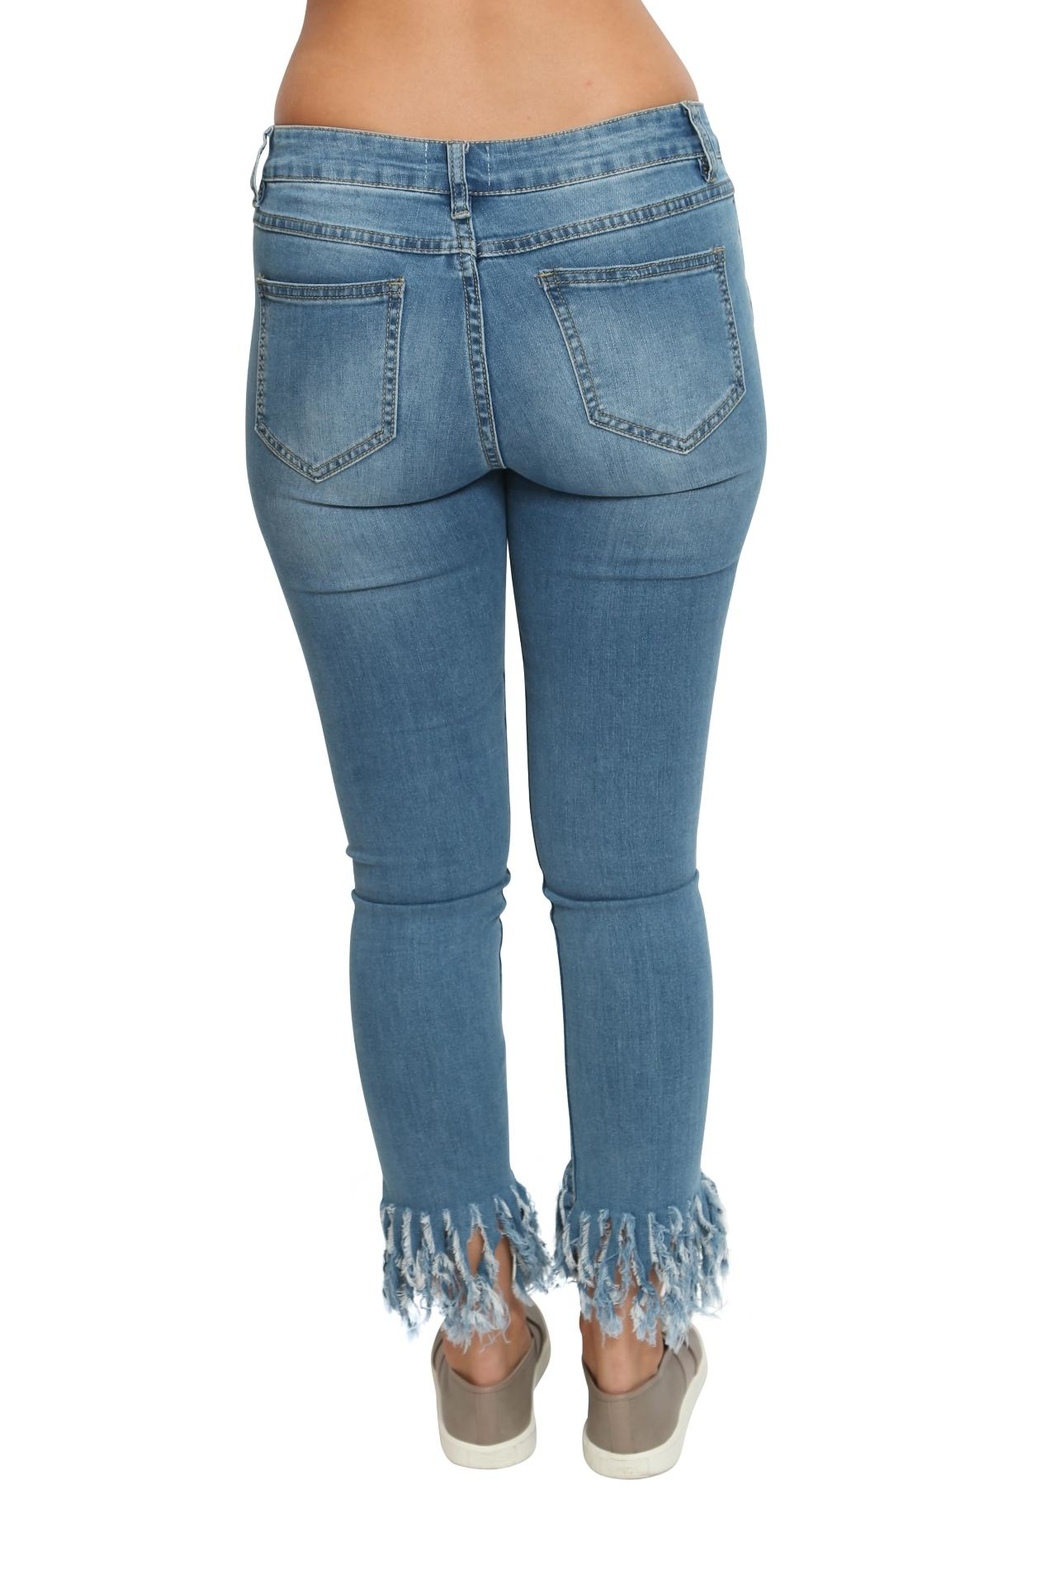 Emory Park Fringed Denim Pants - Back Cropped Image